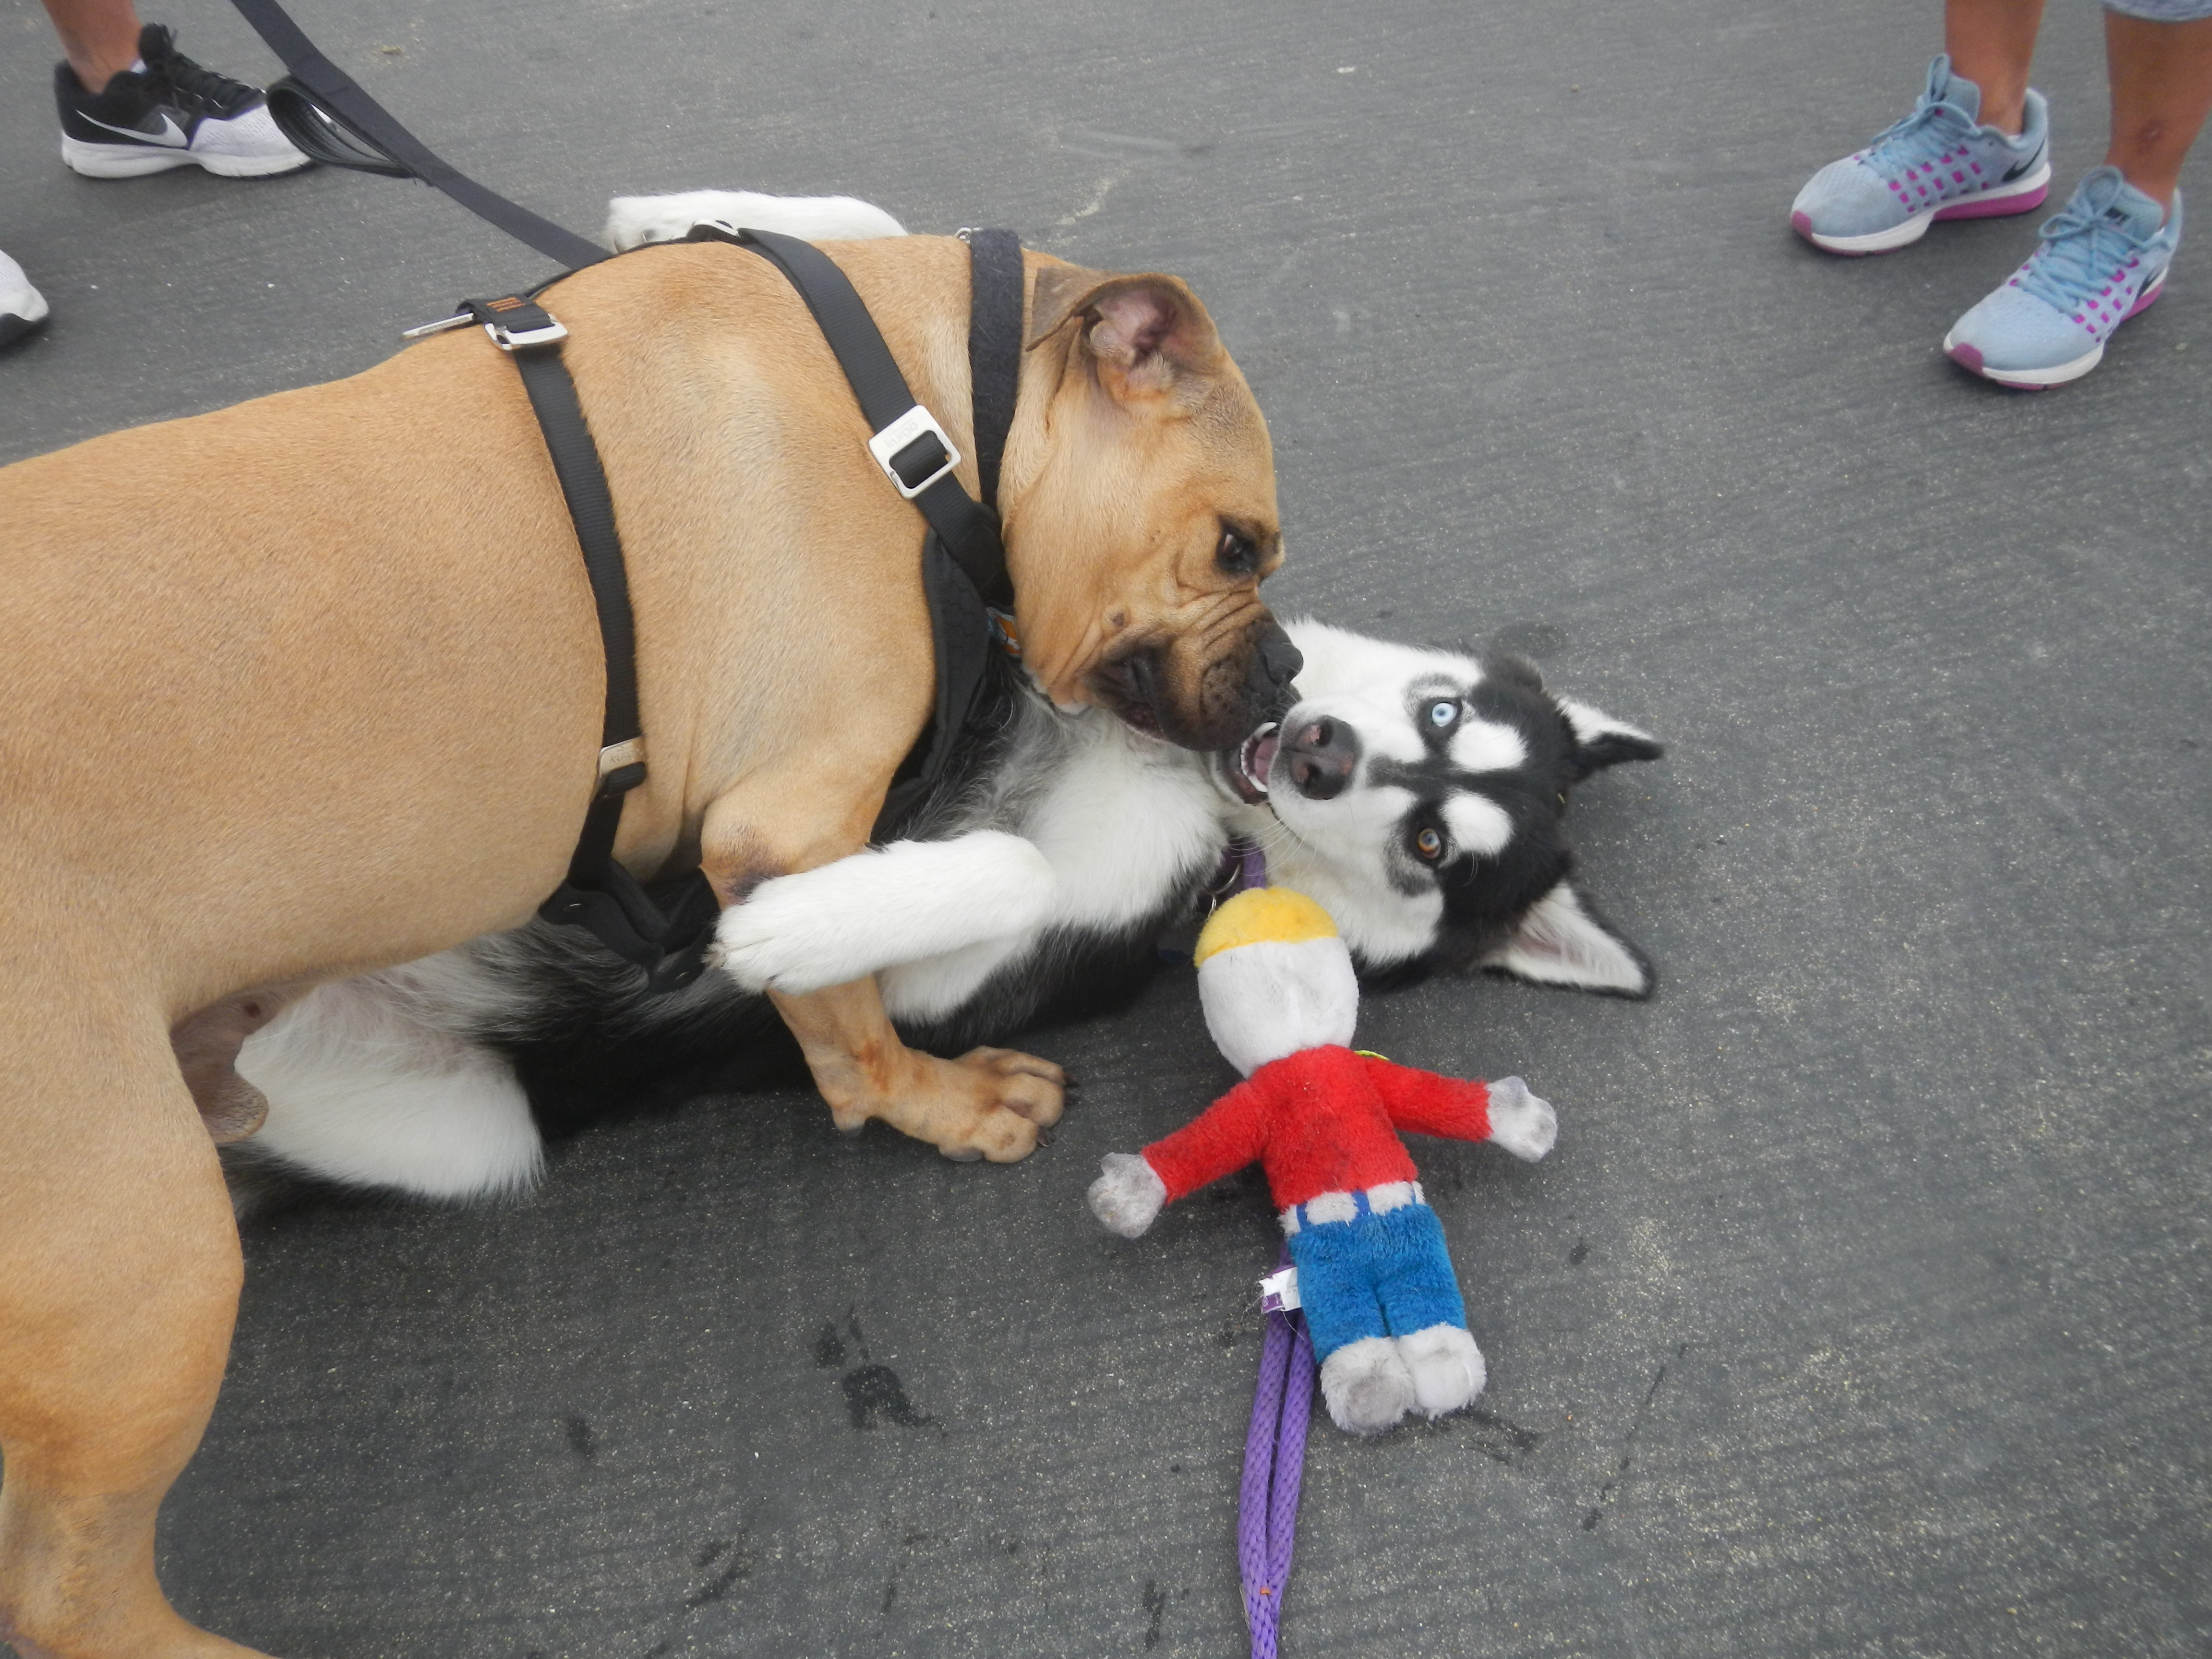 Kay met his match in a bull terrier